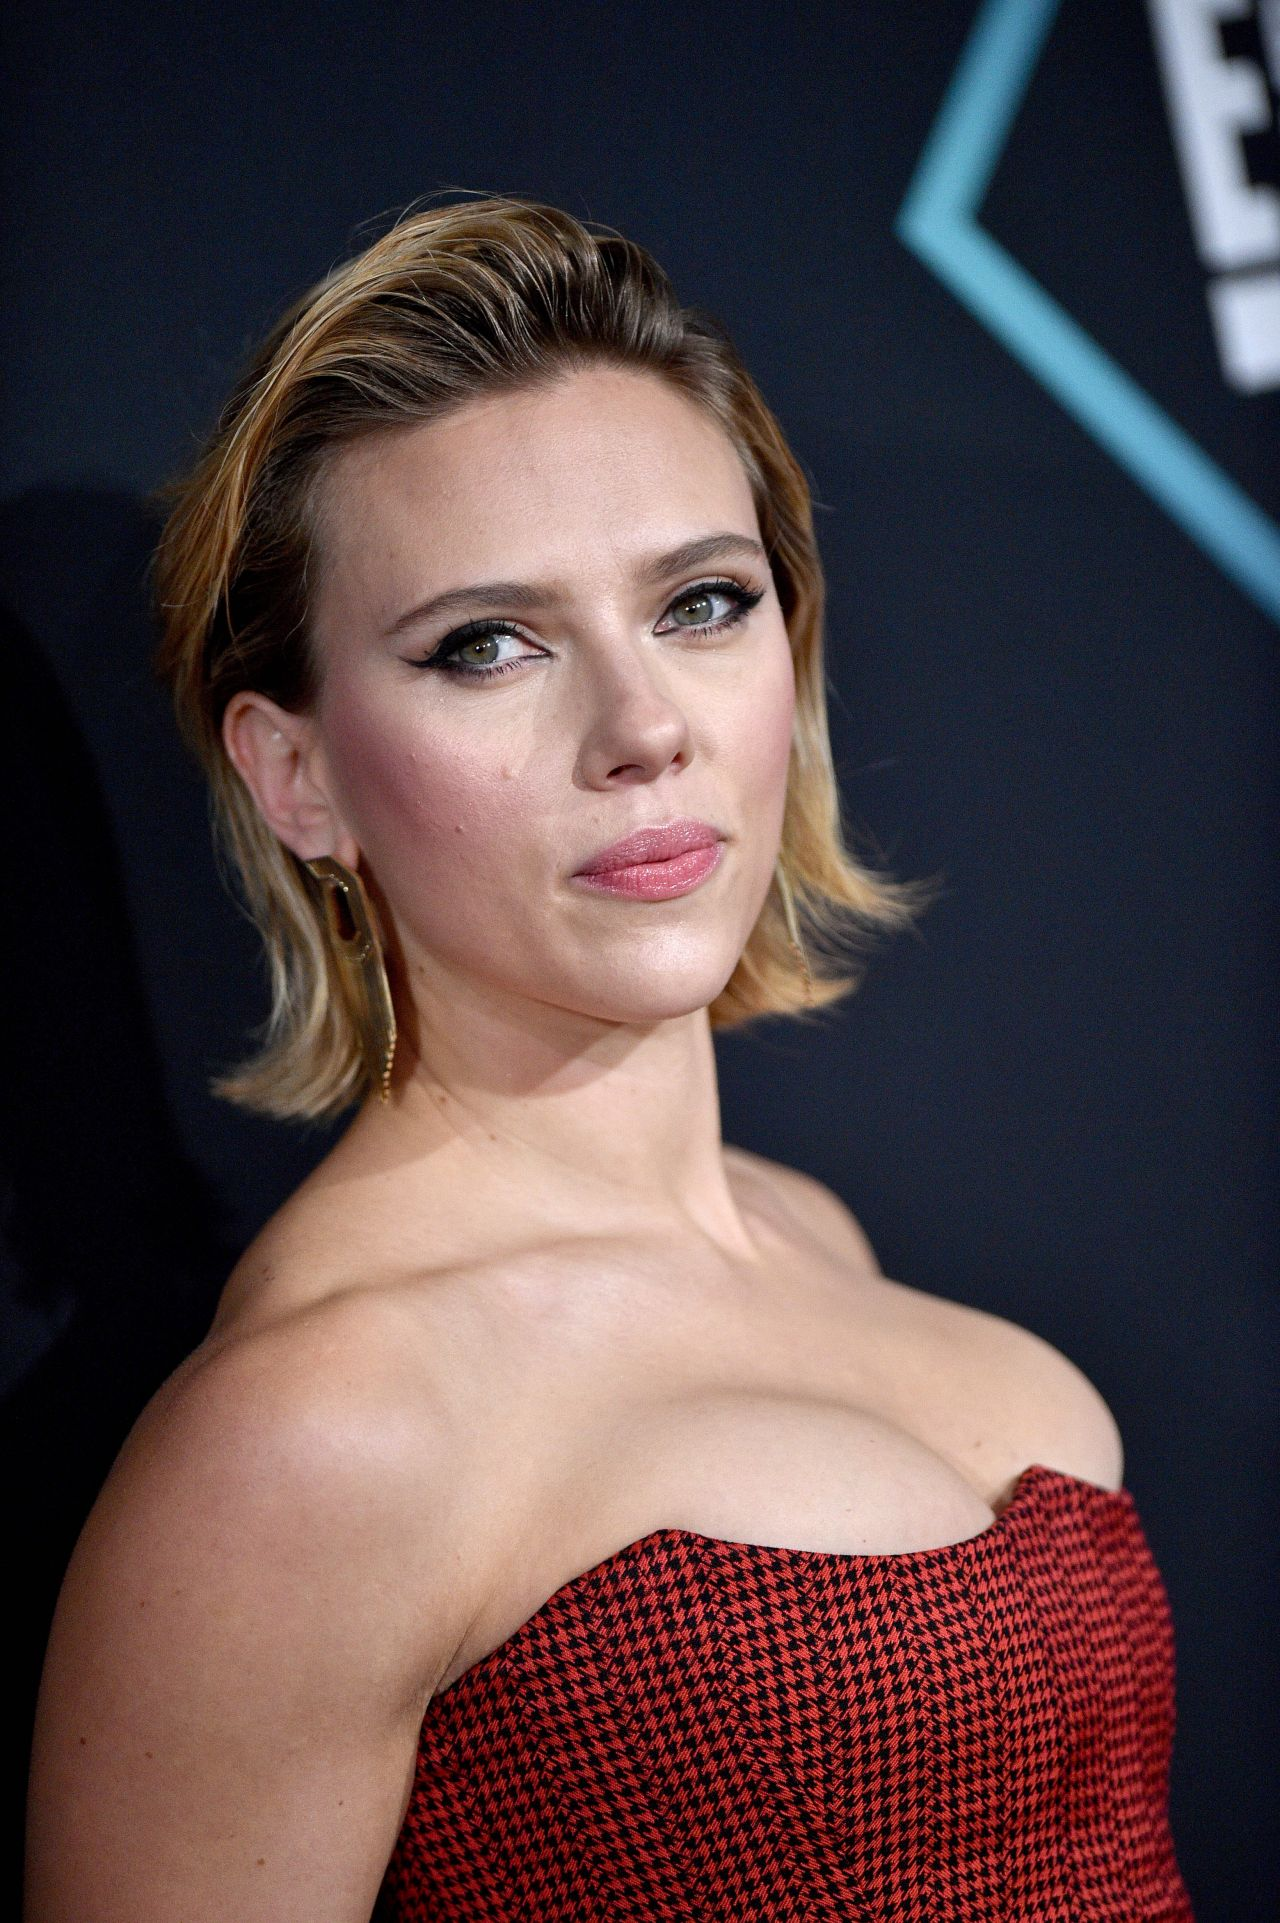 Scarlett Johansson - People's Choice Awards 2018 (Part II)